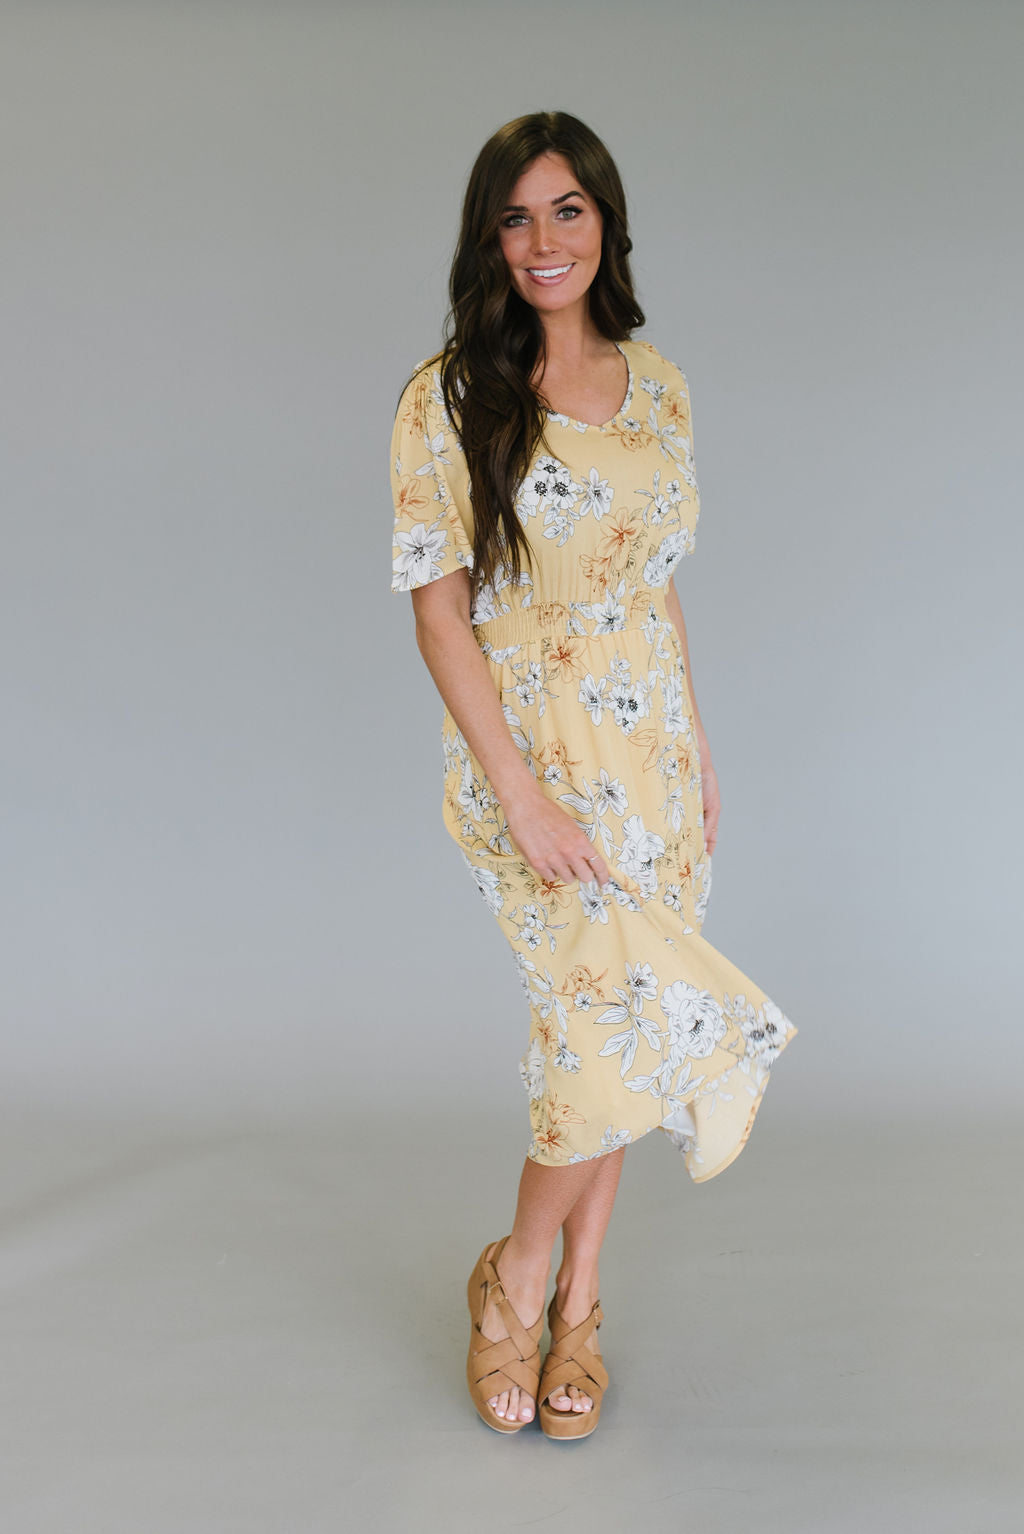 NORA MIDI DRESS IN YELLOW AND WHITE FLORAL